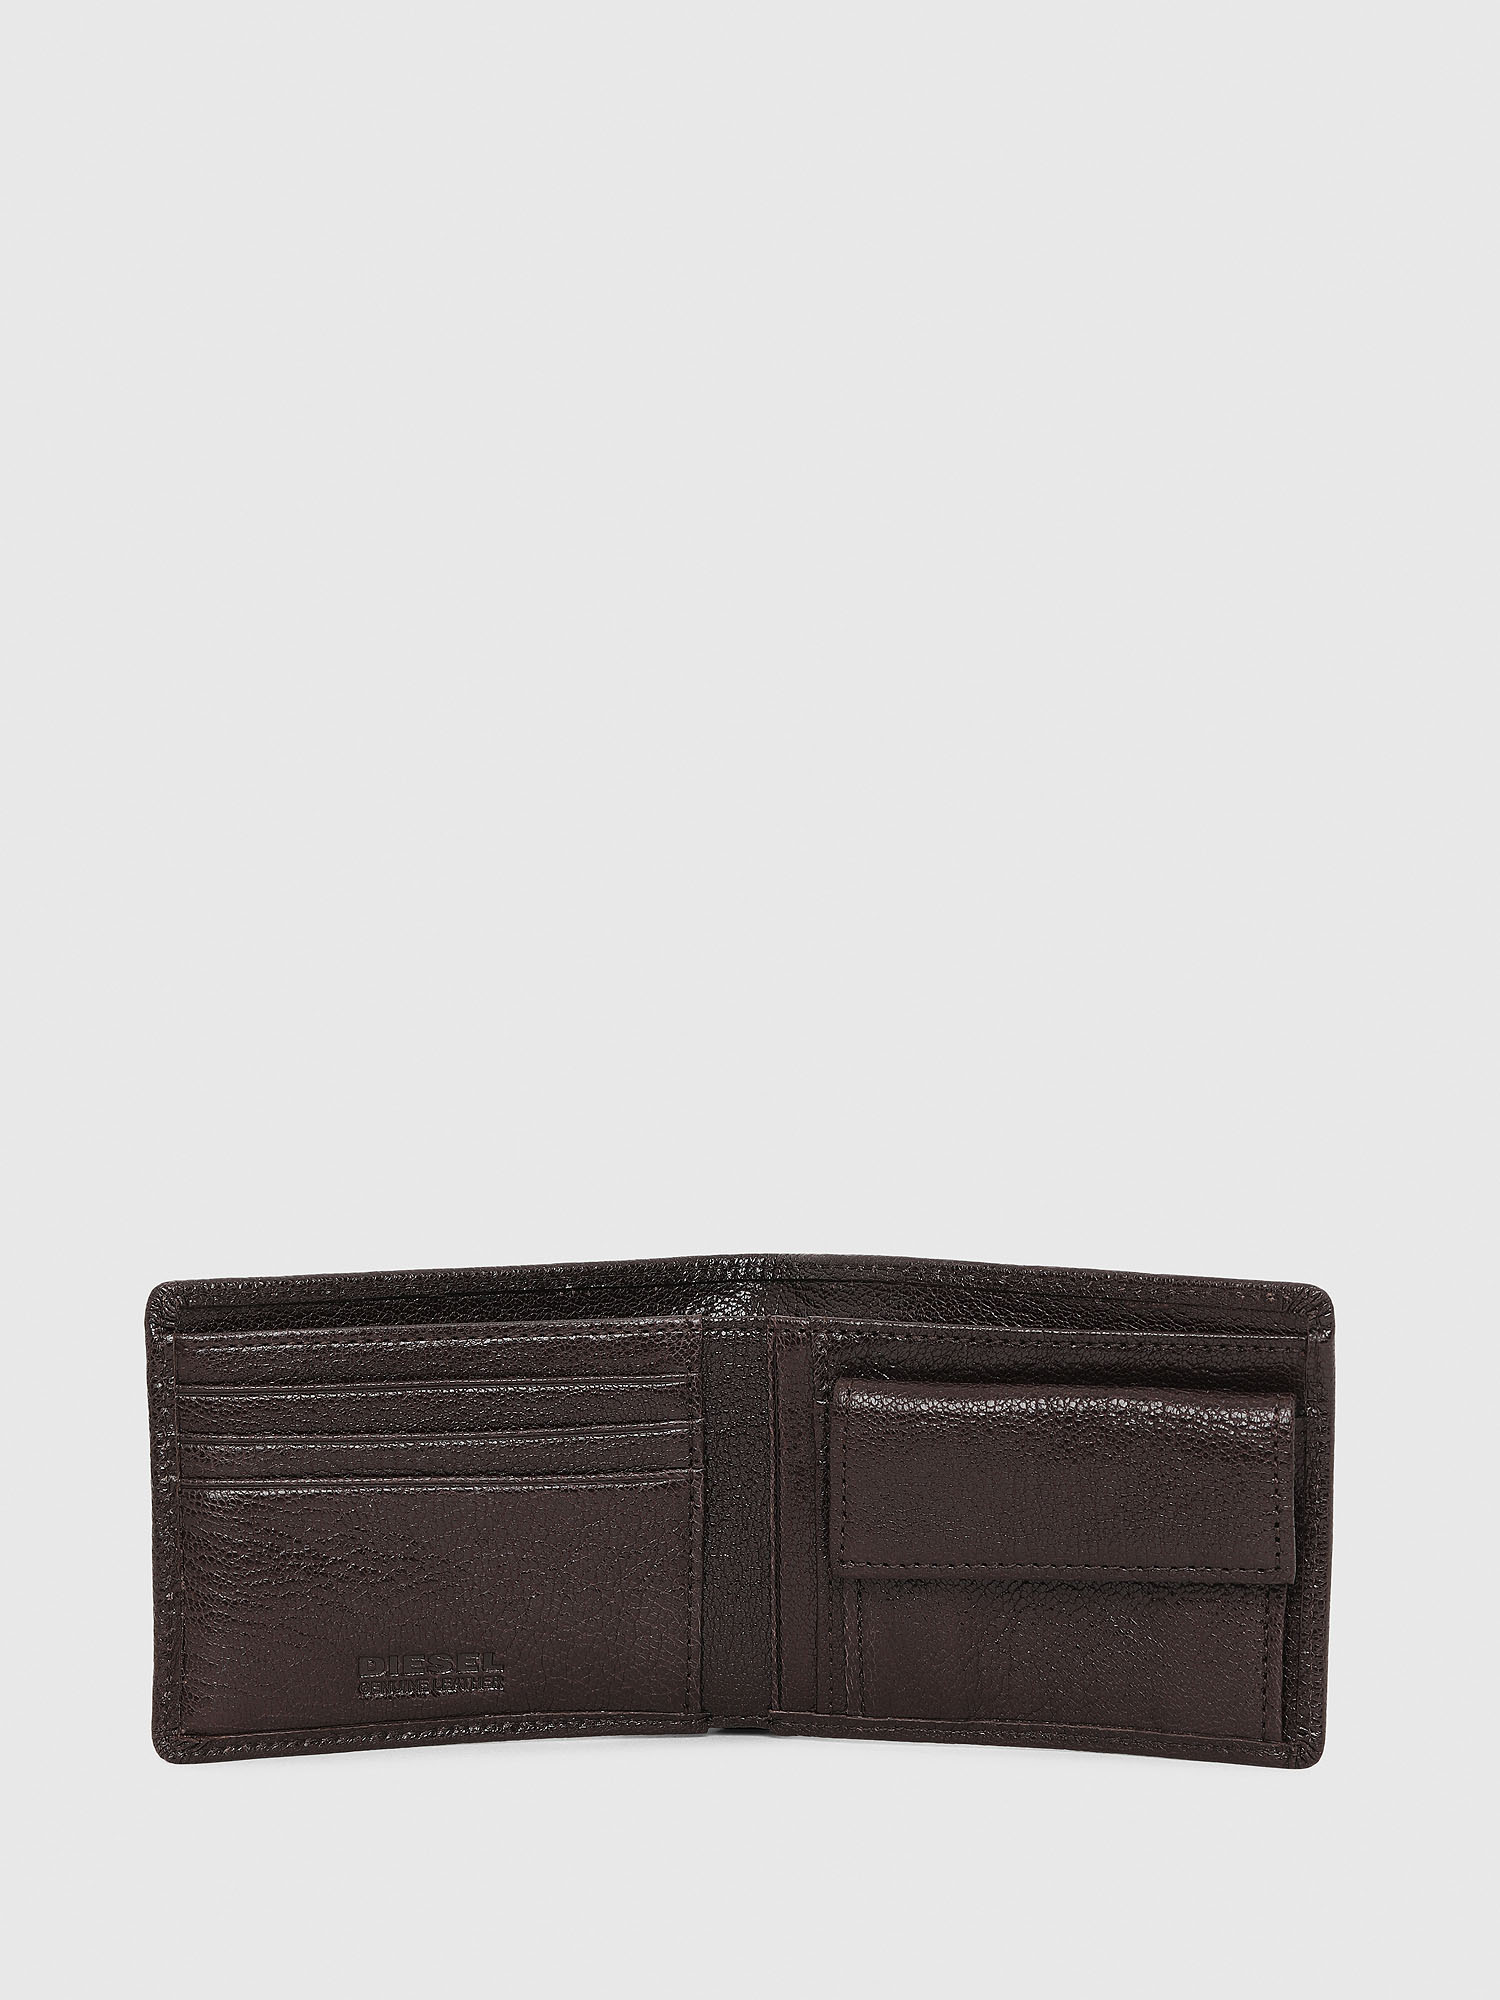 Diesel - HIRESH XS,  - Small Wallets - Image 3